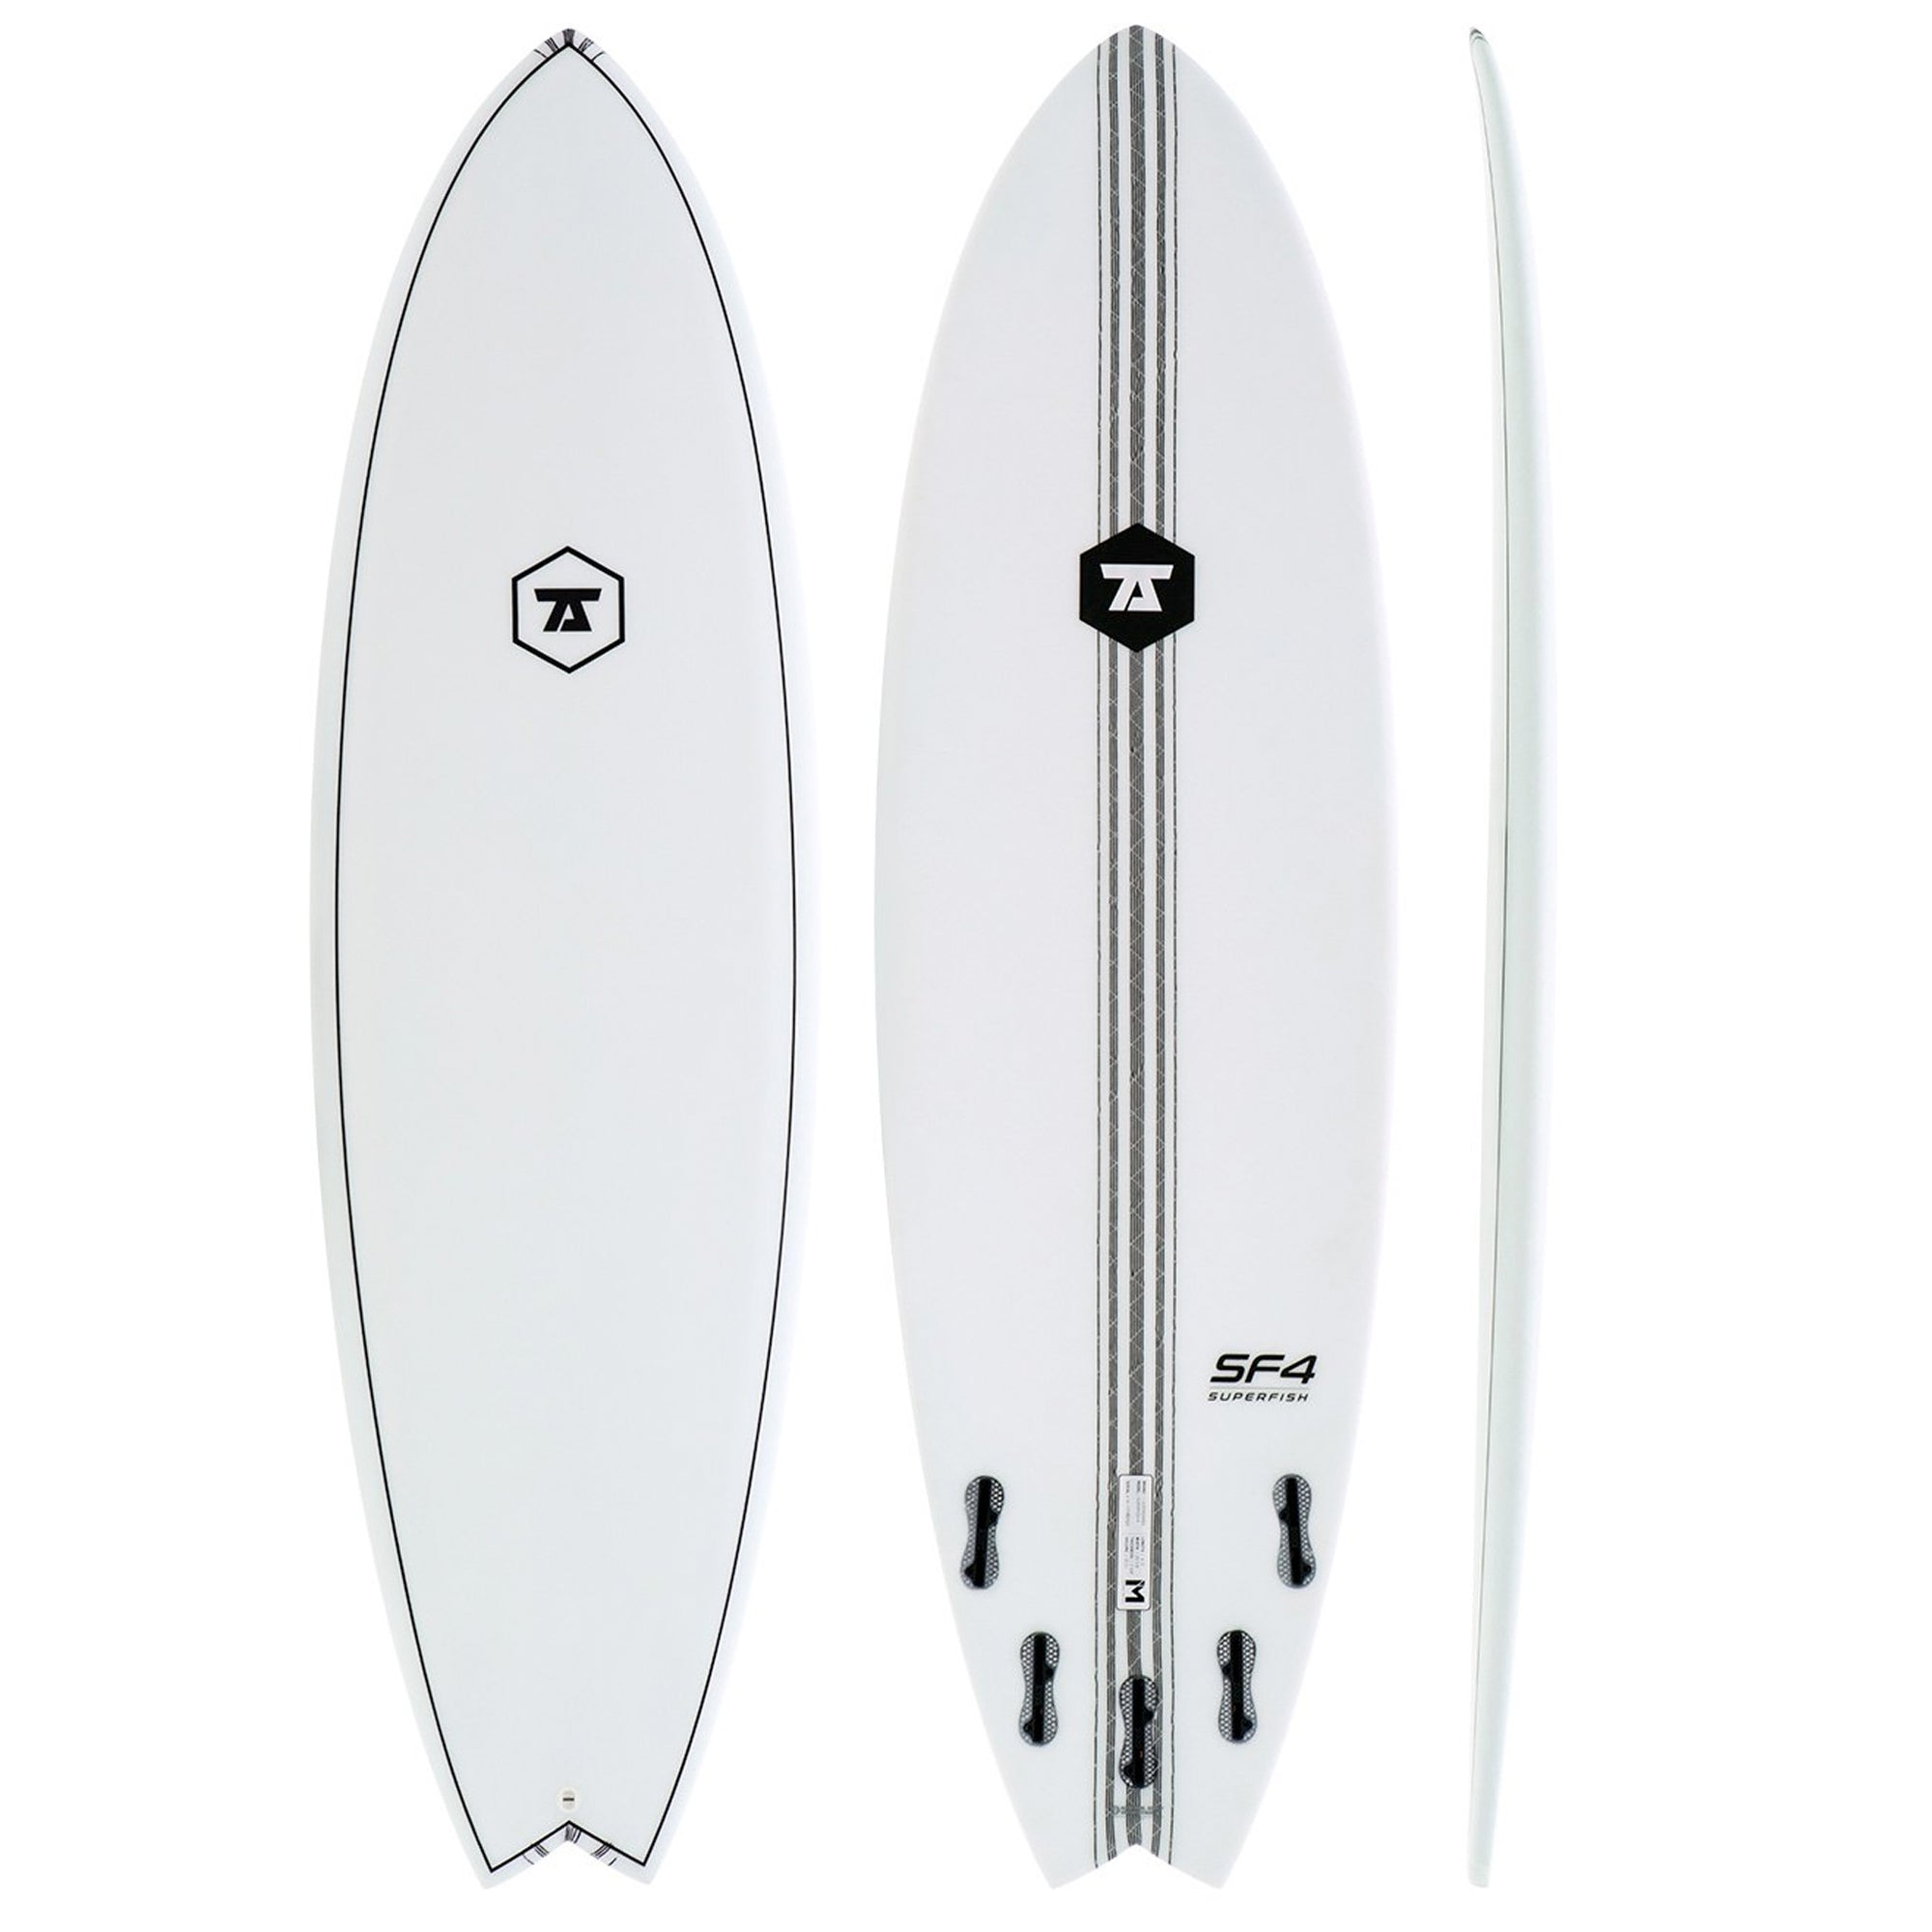 7S SuperFish 4 Surfboard - IM